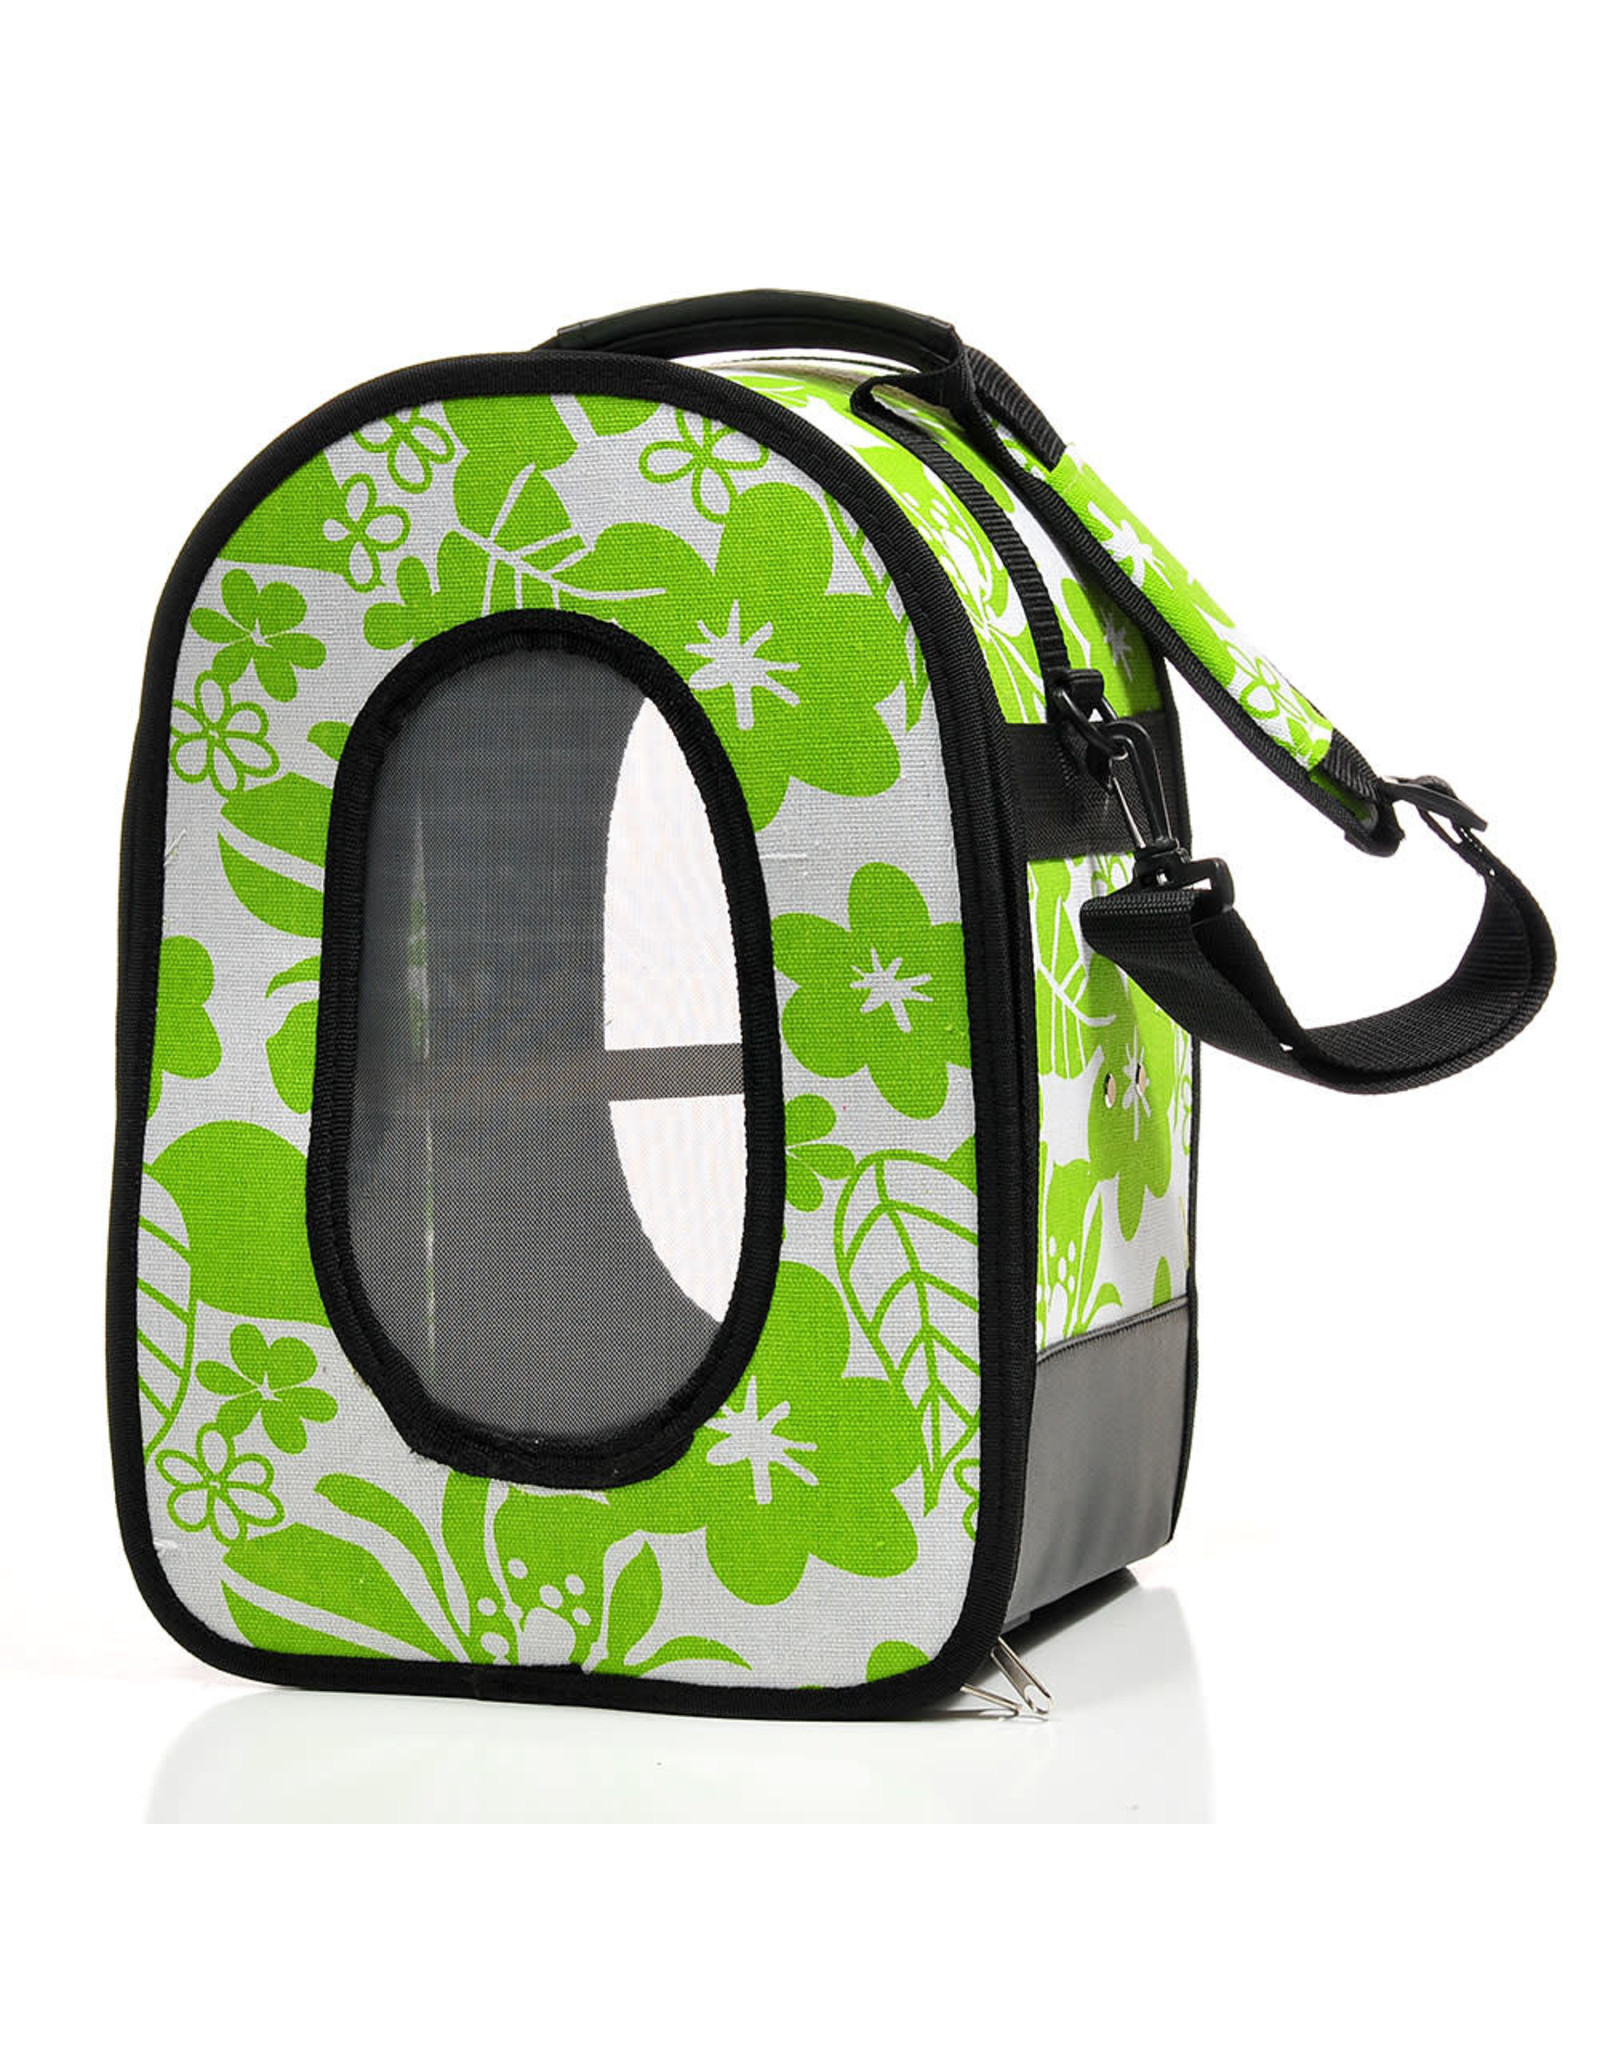 """Soft Sided Travel Carrier - LARGE GREEN 18.5"""" x 13.5"""" x 9"""""""